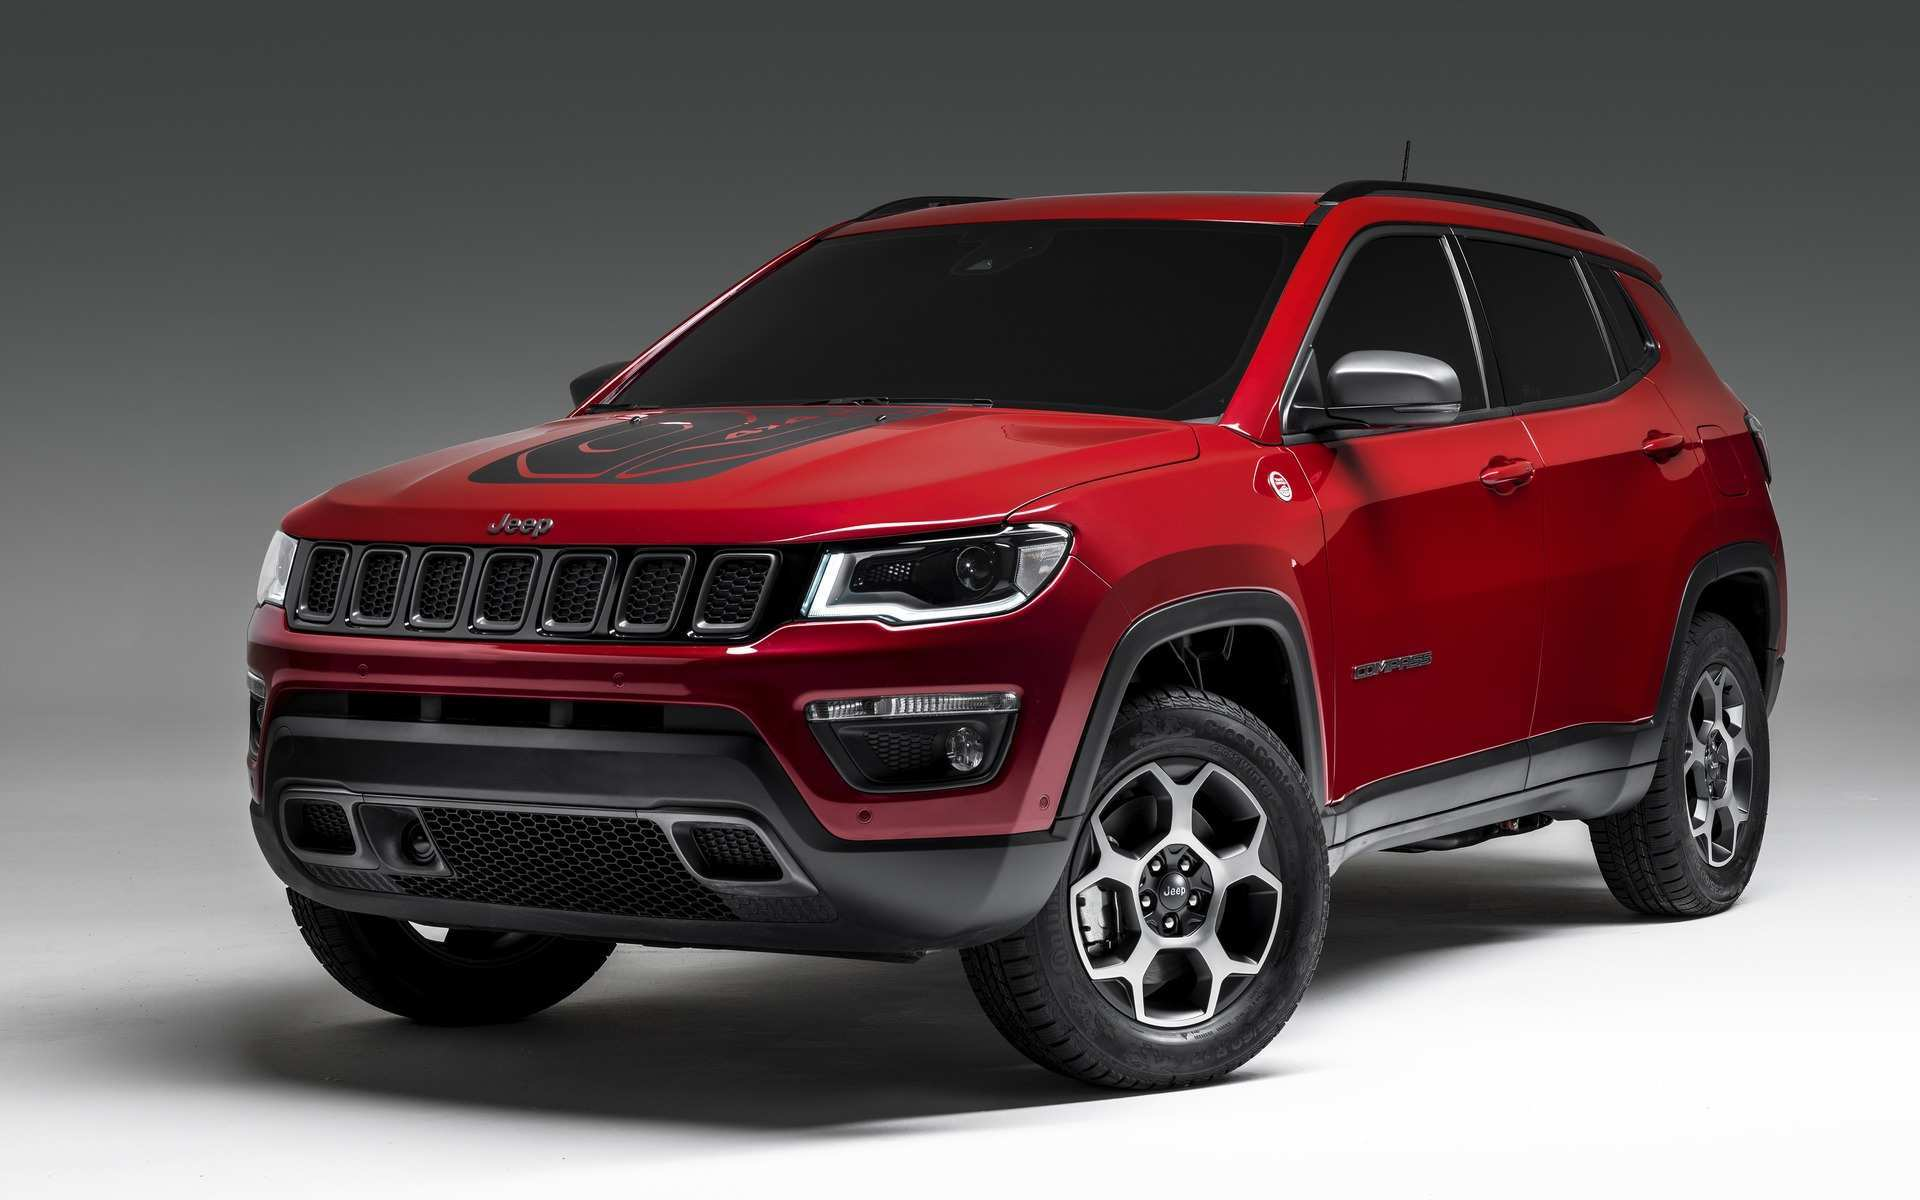 90 The Best Jeep Renegade 2020 Release Date New Concept